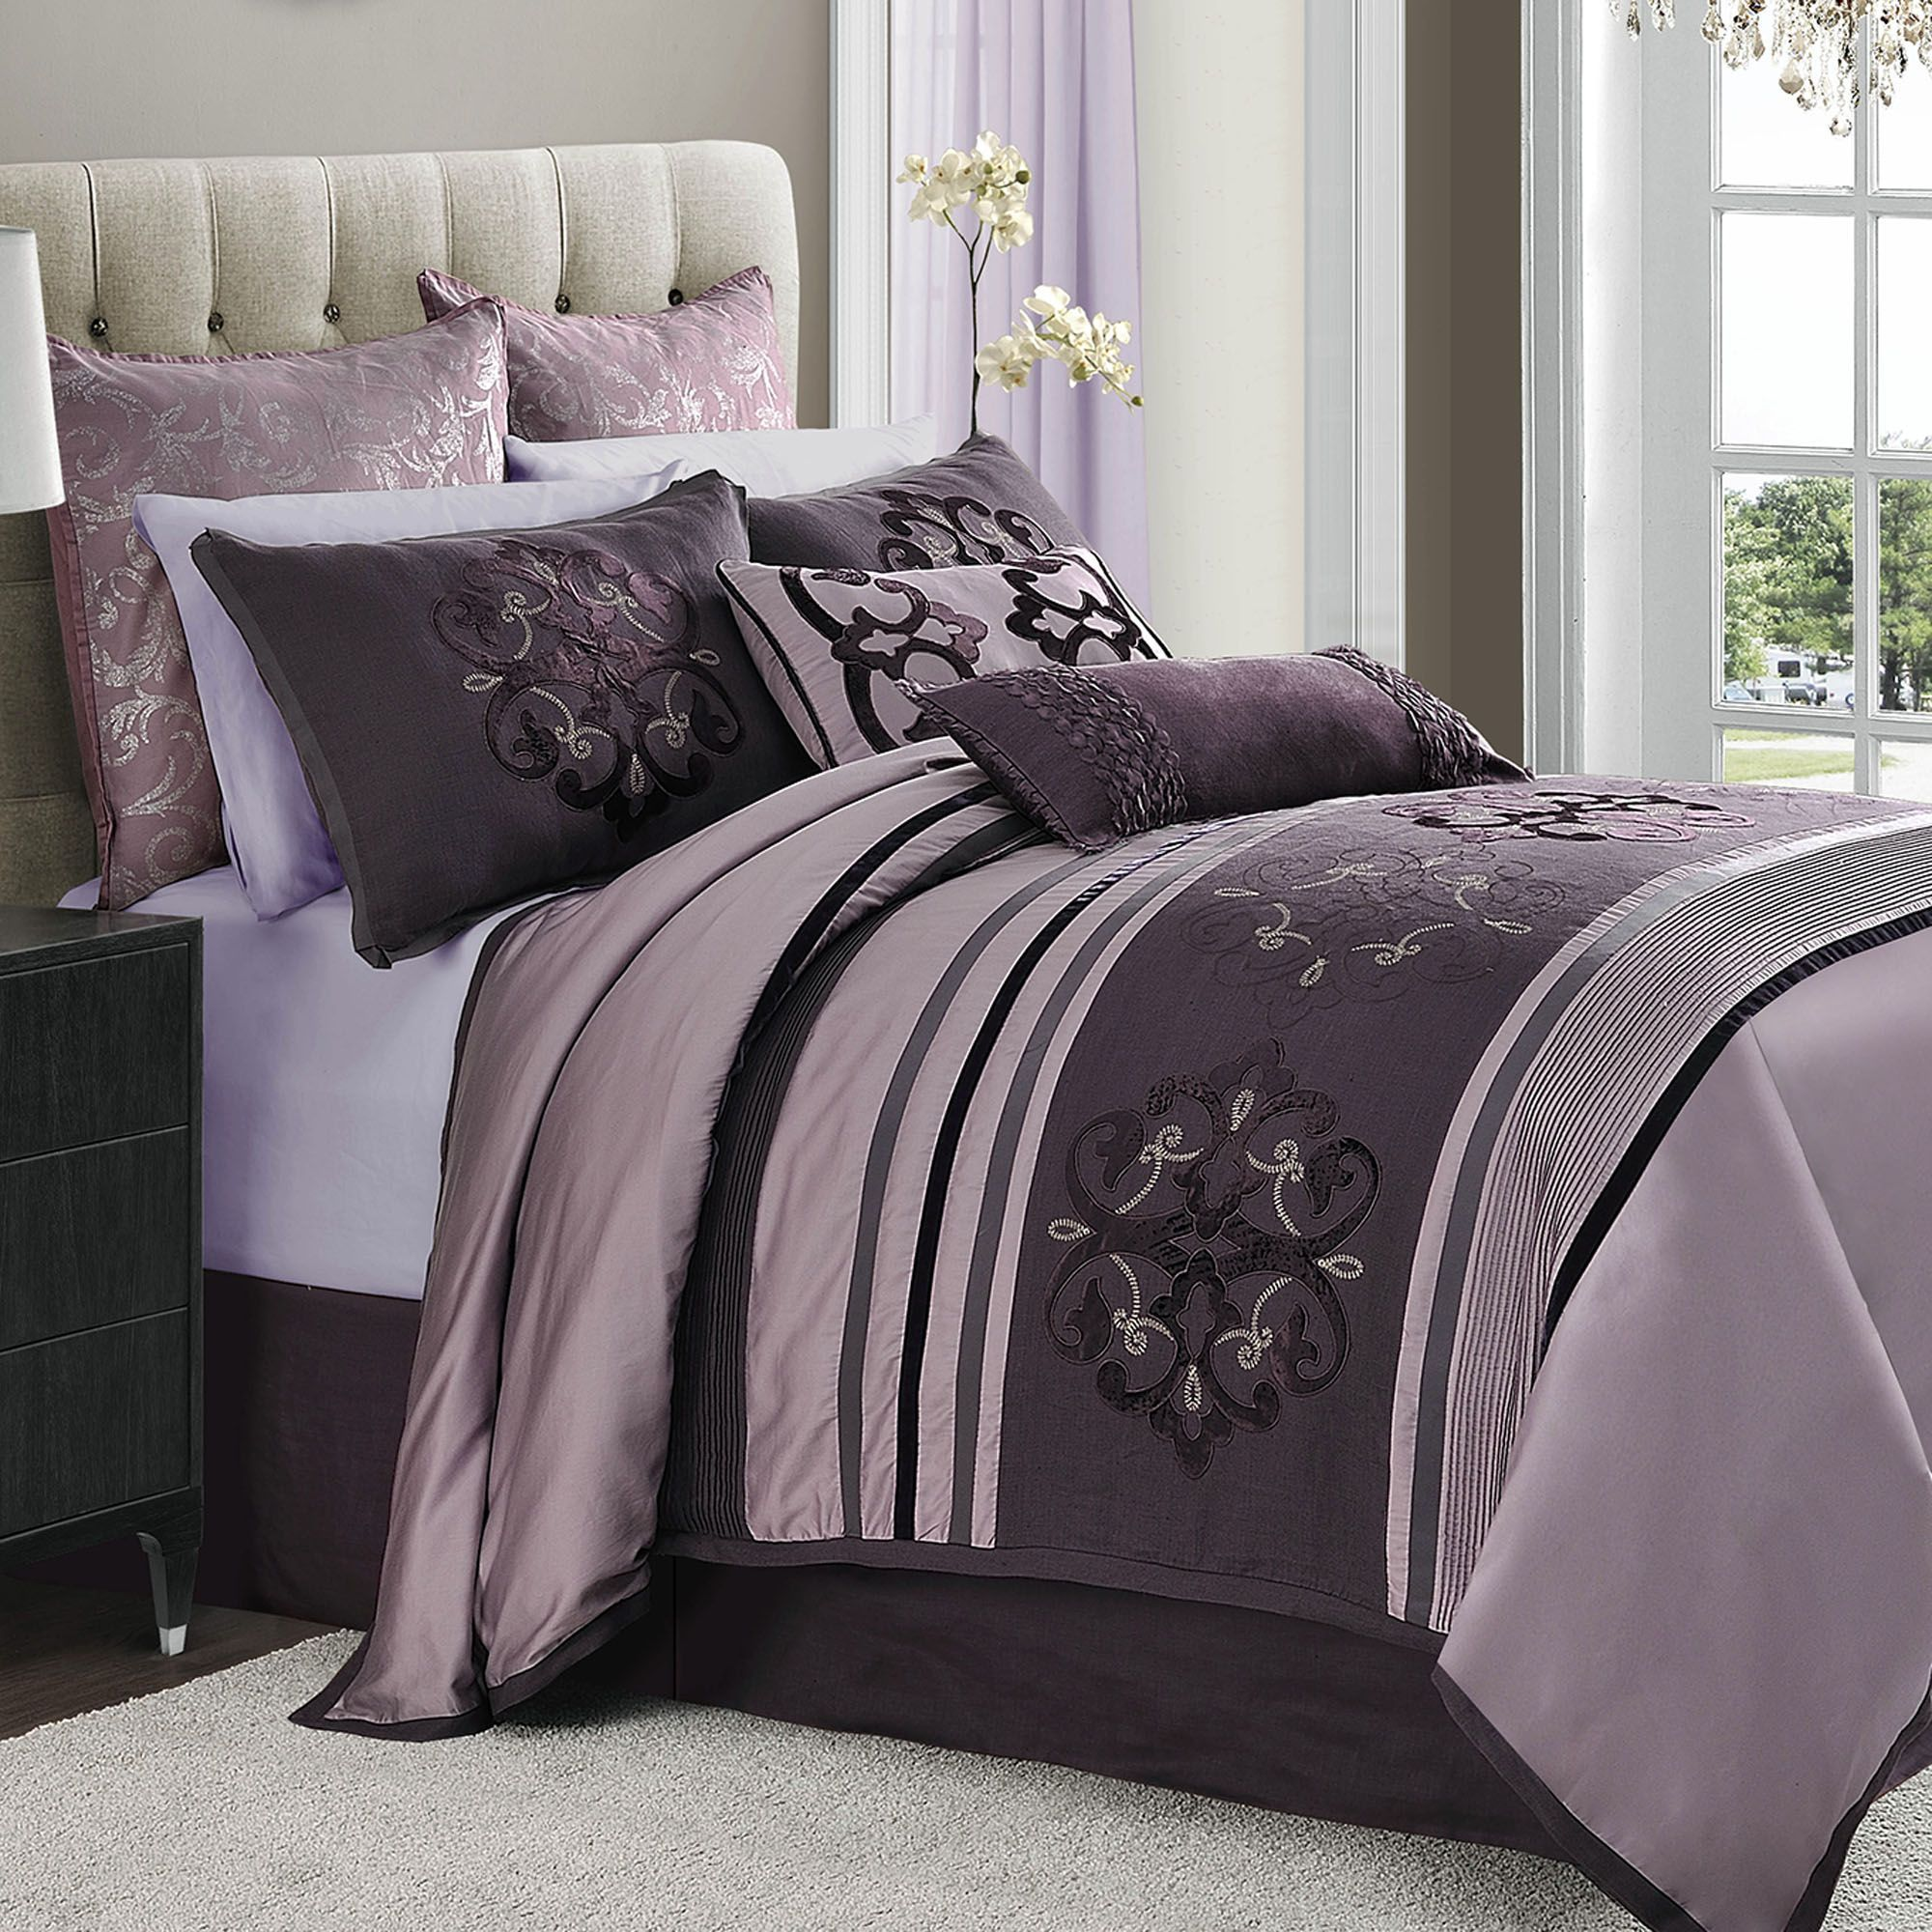 best fascinating bedroom comforter decorating designets collection linen lilac curtains stylish bedding drapes fantastic also to design the size cot sets match and matching comforters complete with argos